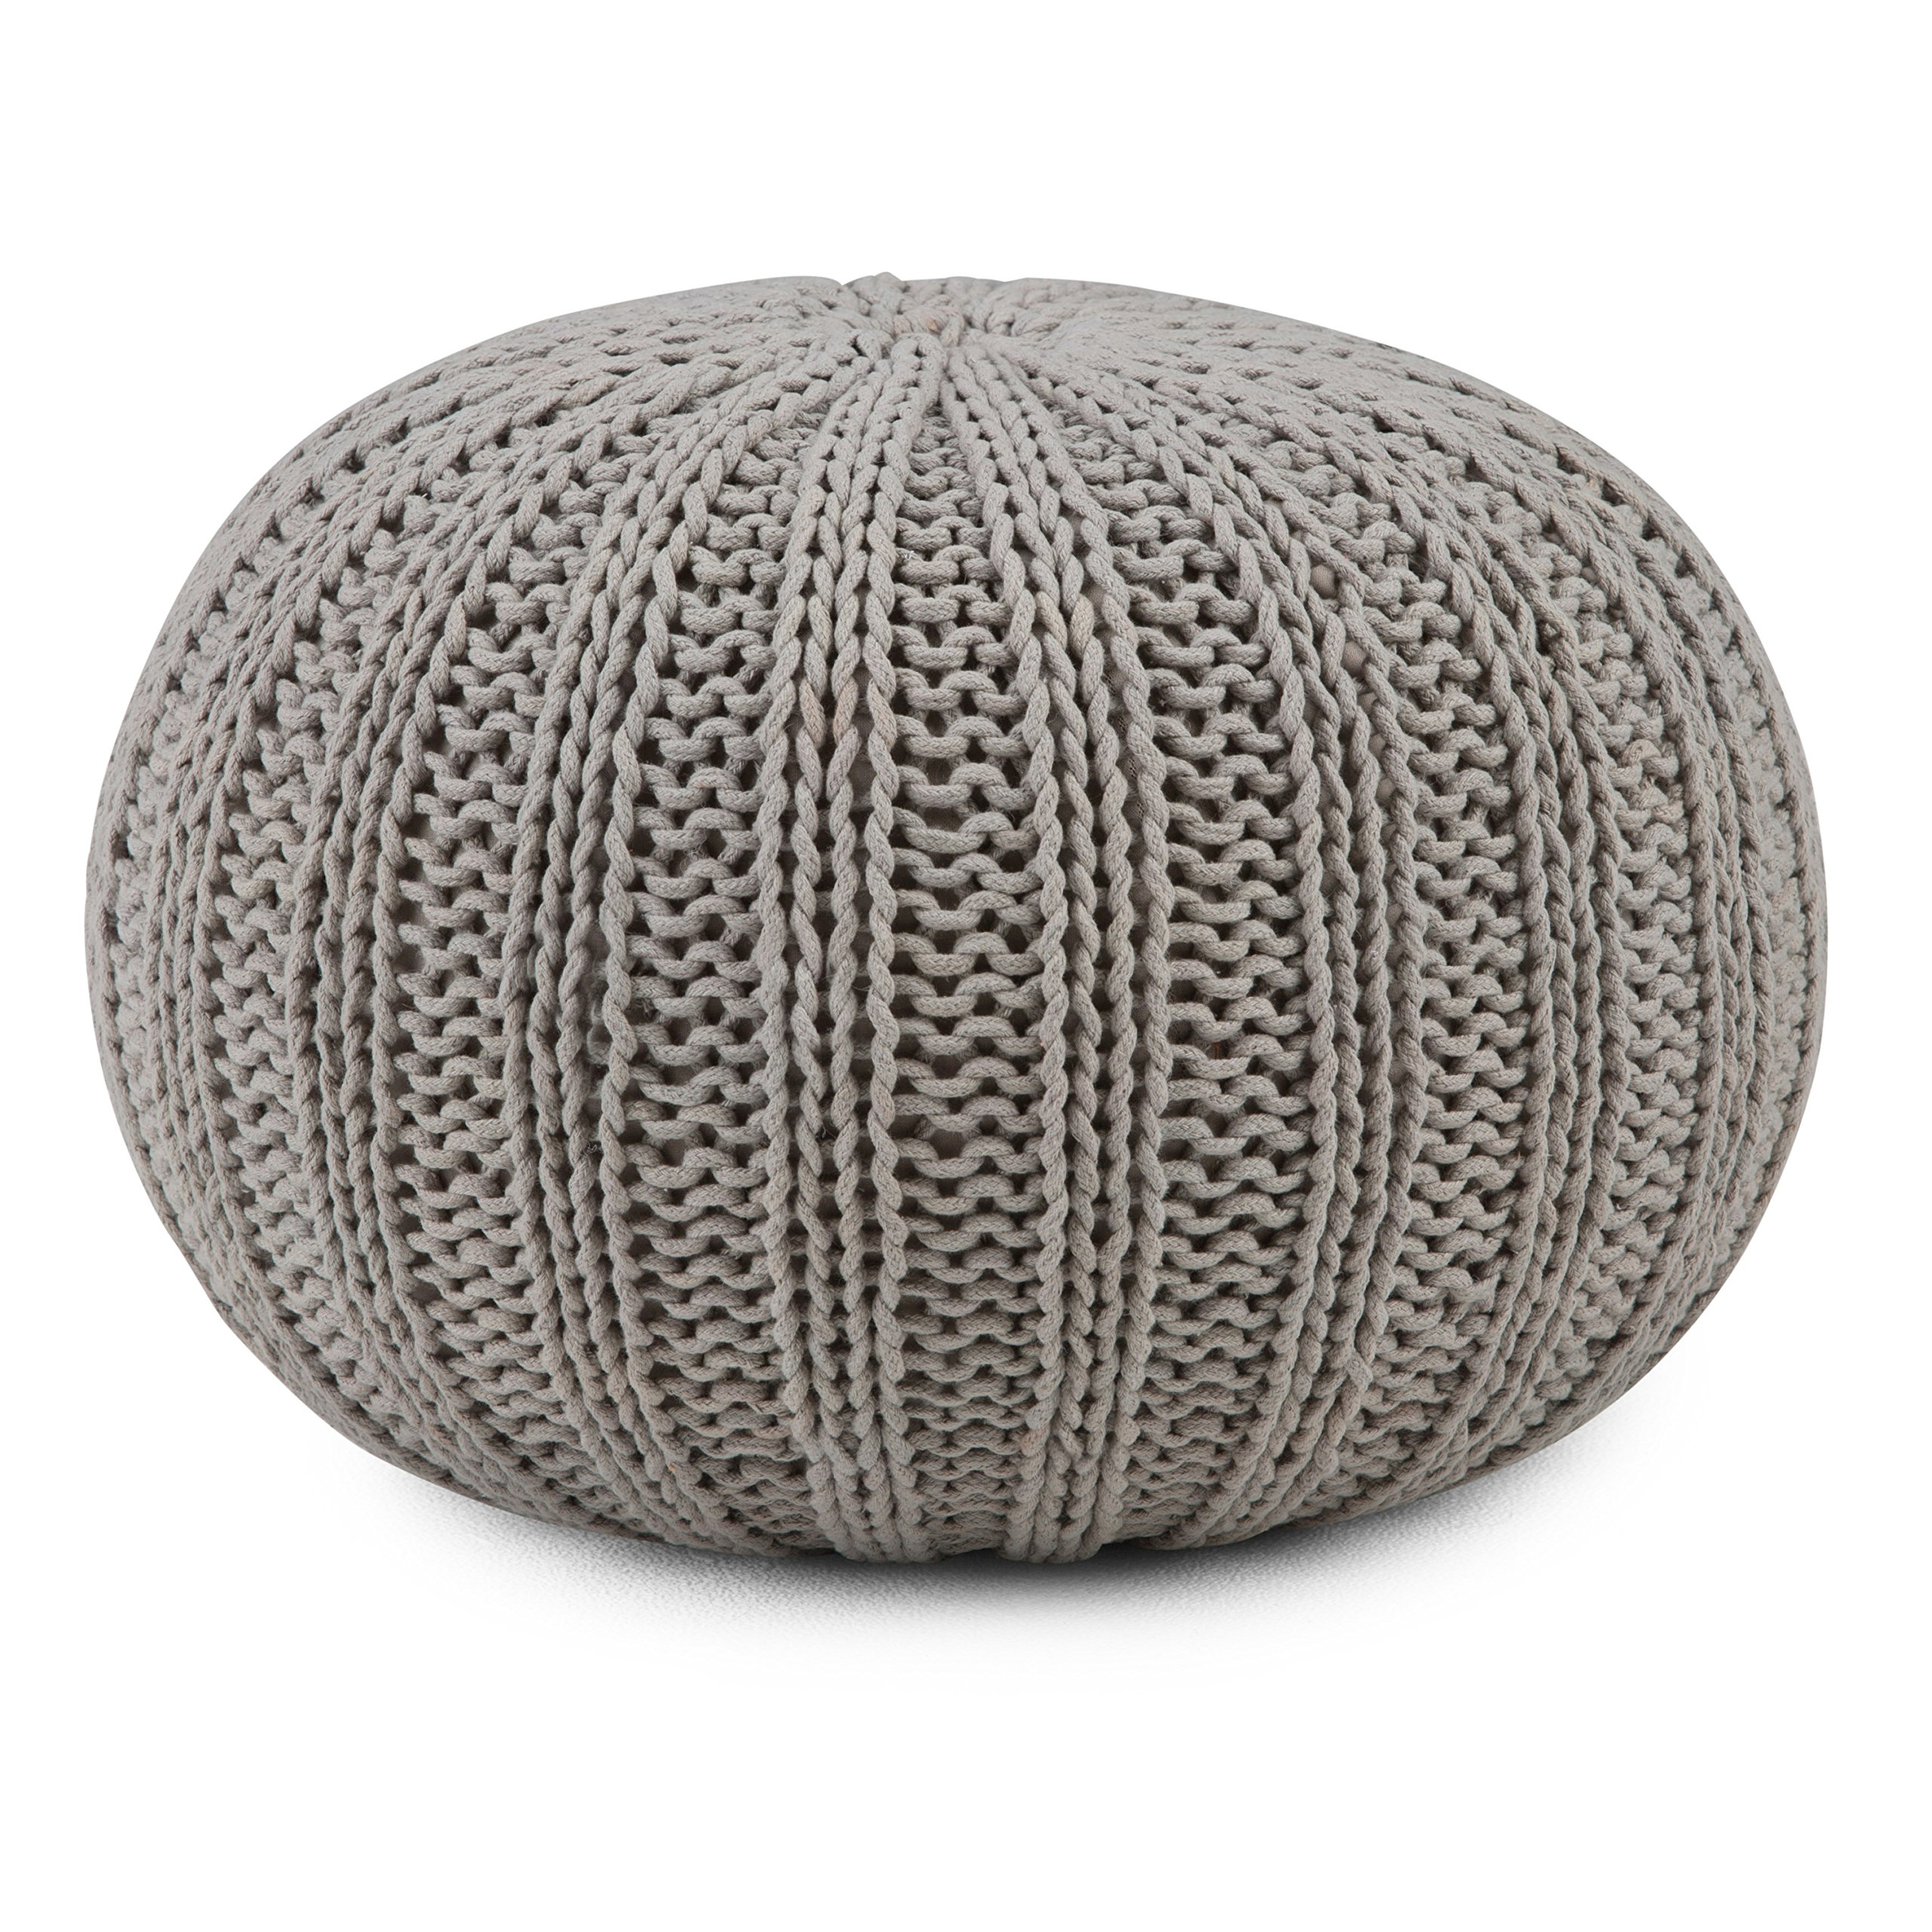 Simpli Home Shelby Round Pouf, Dove Grey by Simpli Home